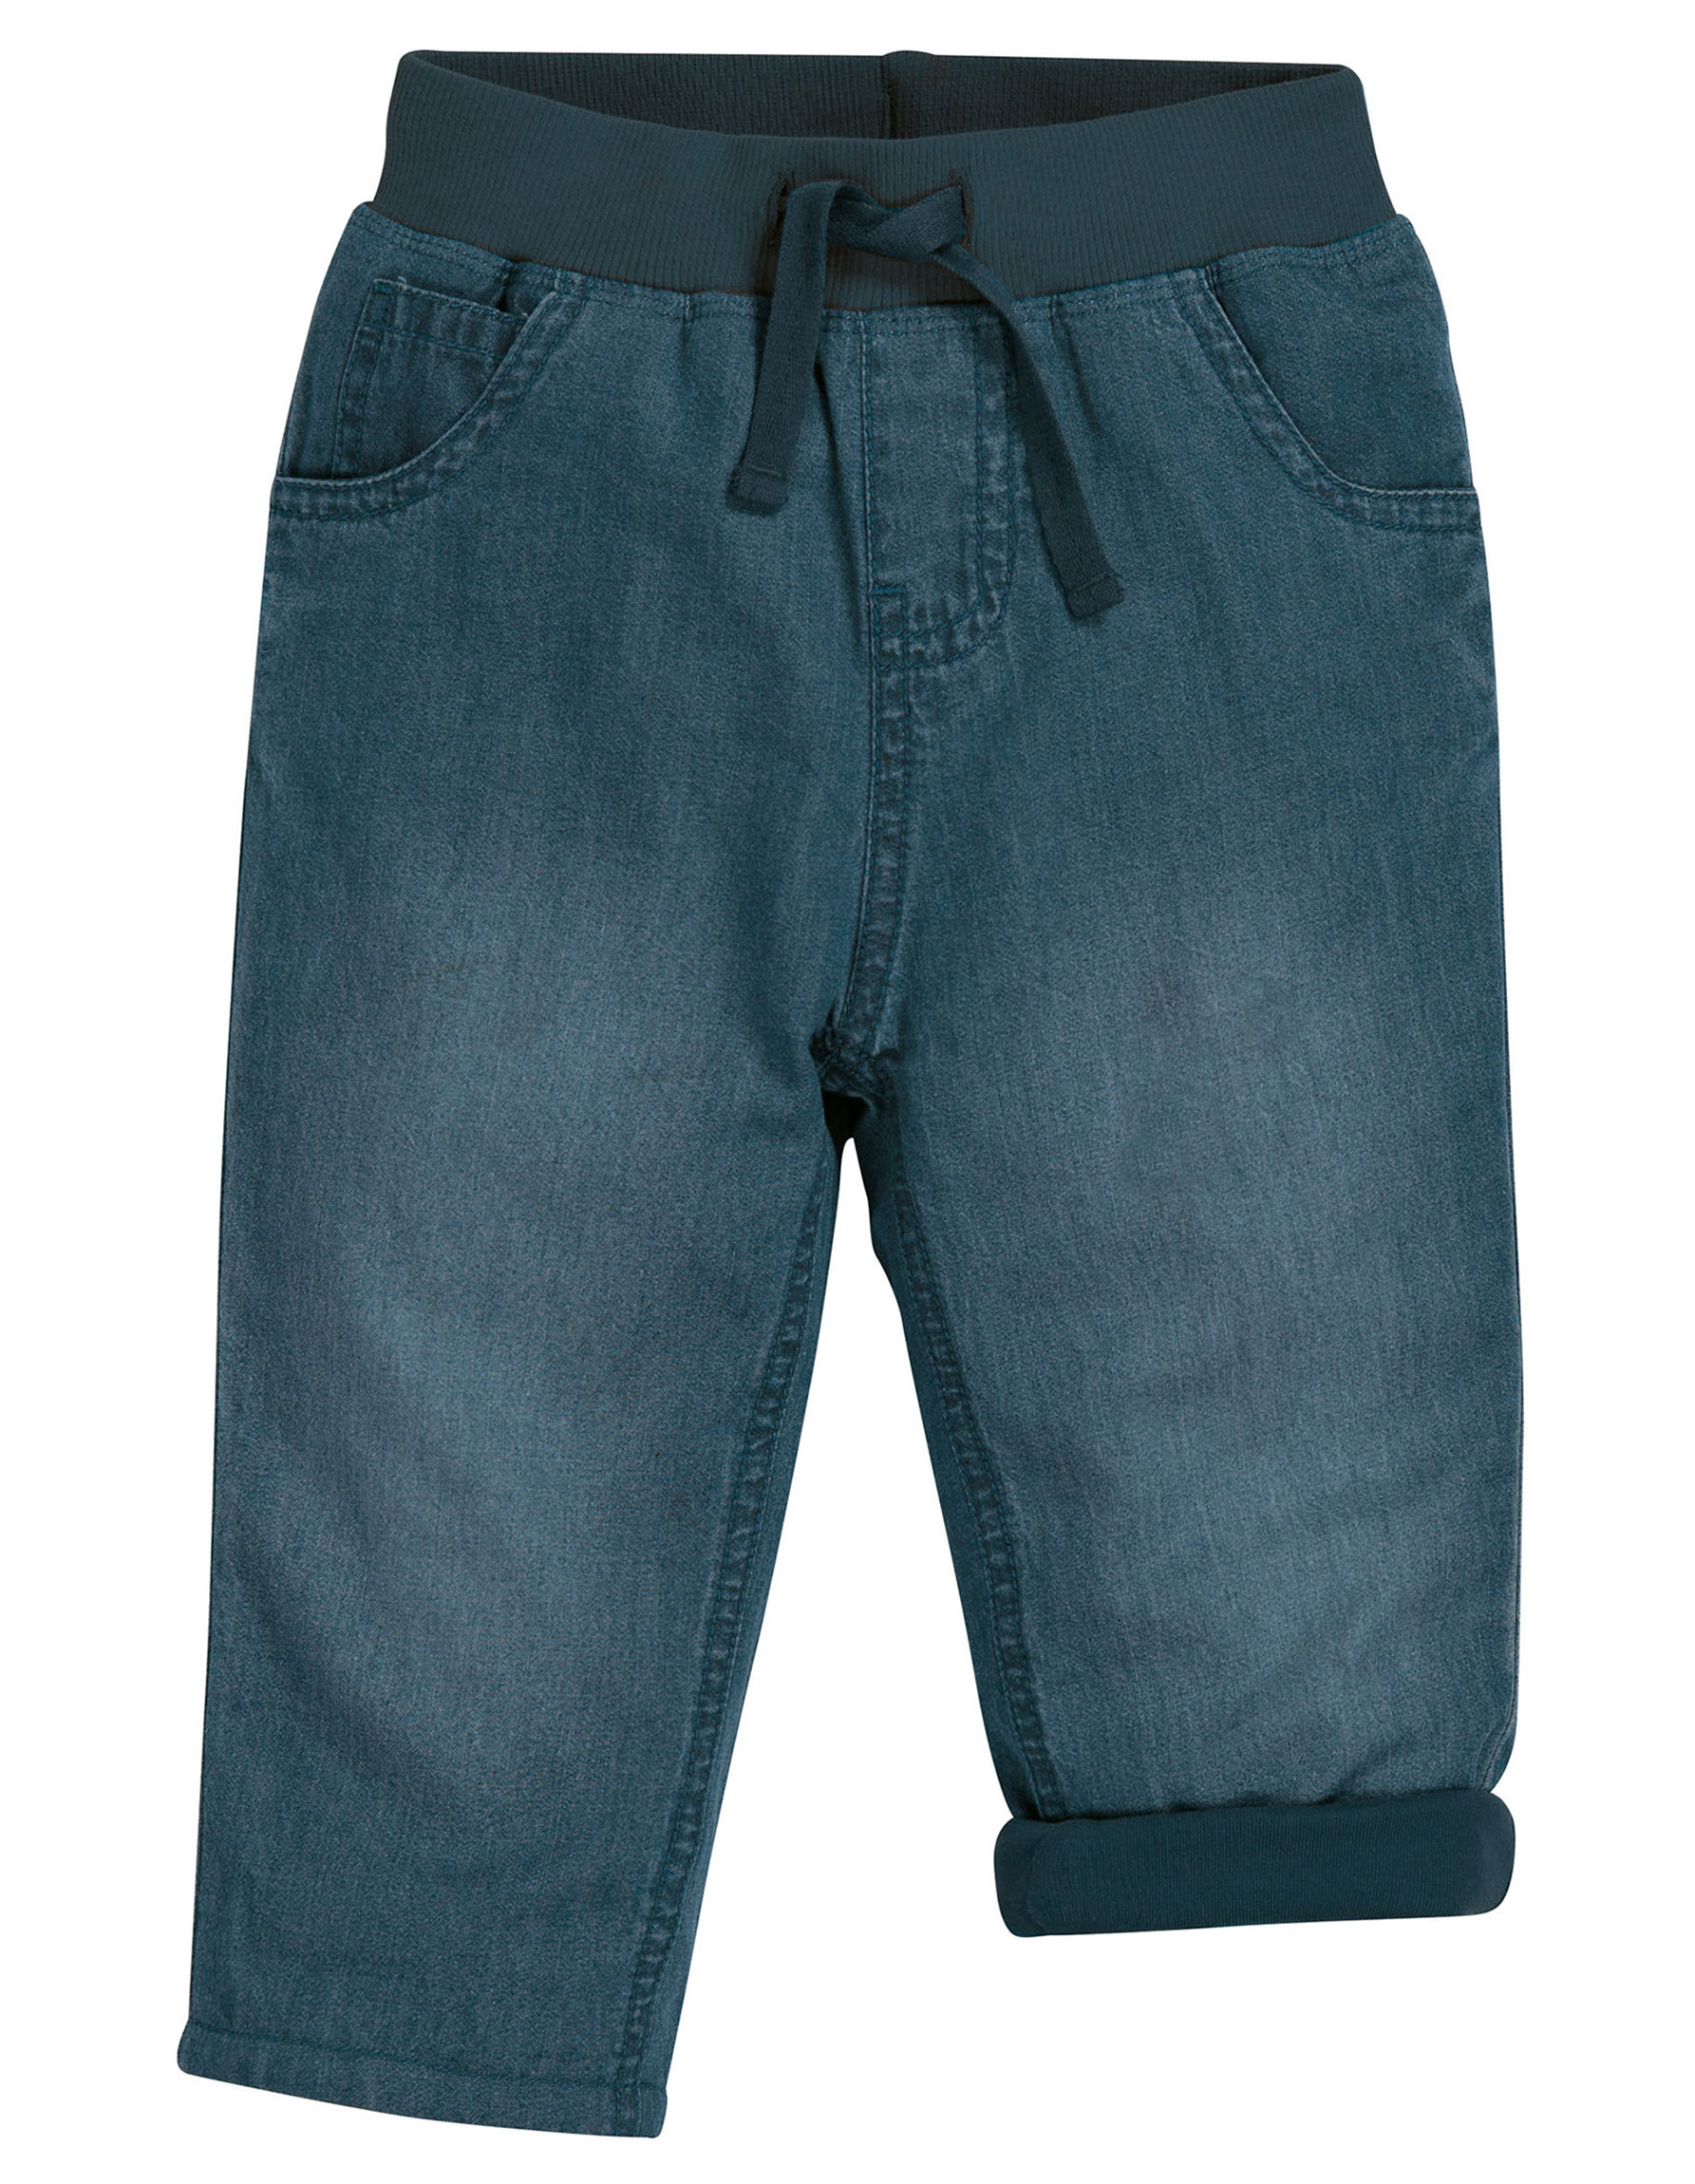 Frugi Comfy Lined Jeans, Chambray